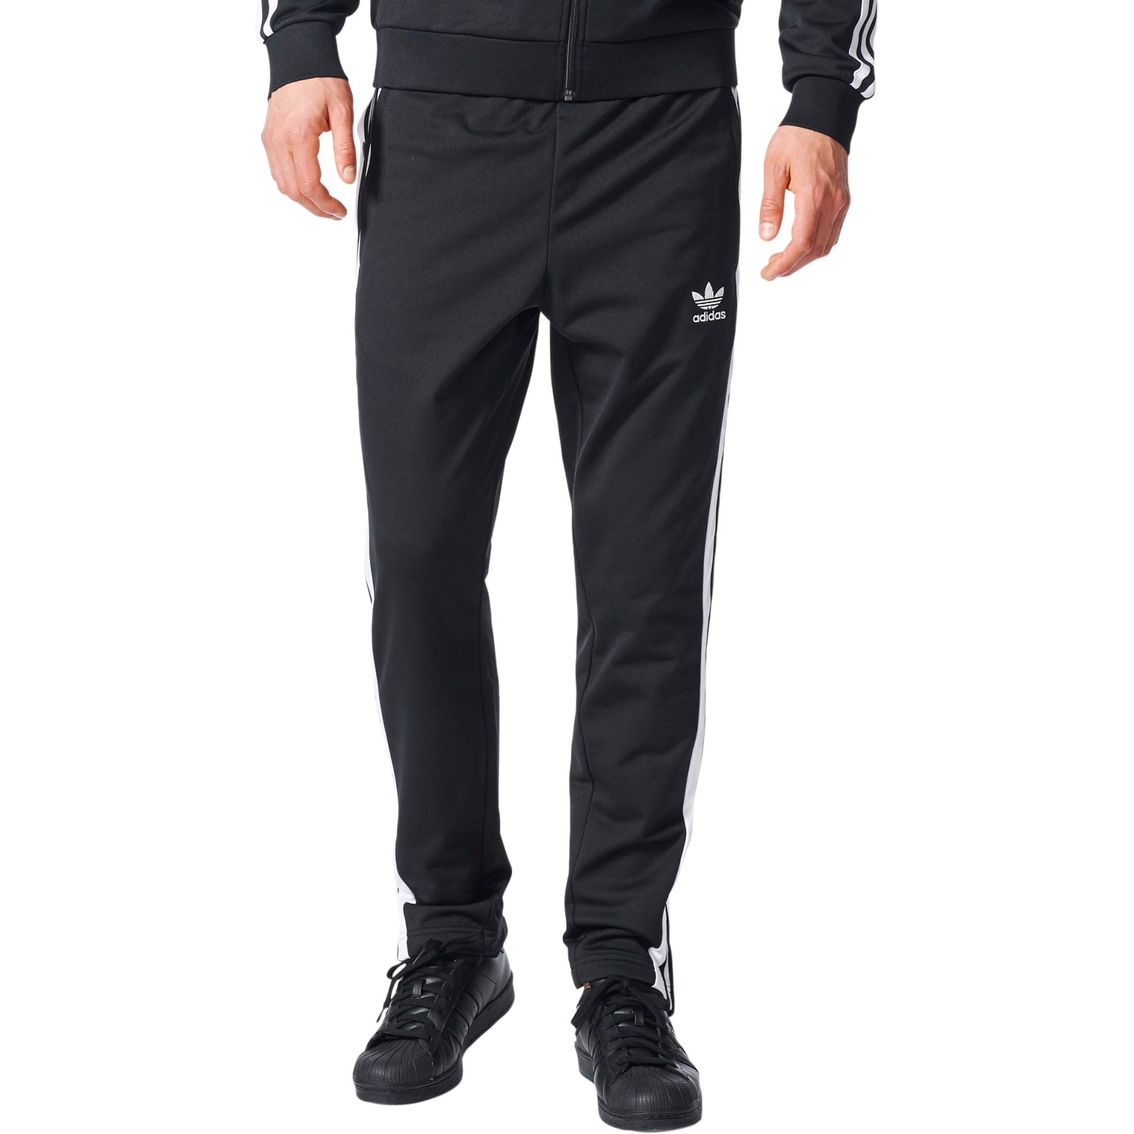 38b37d70821a Adidas Adibreak Track Pants